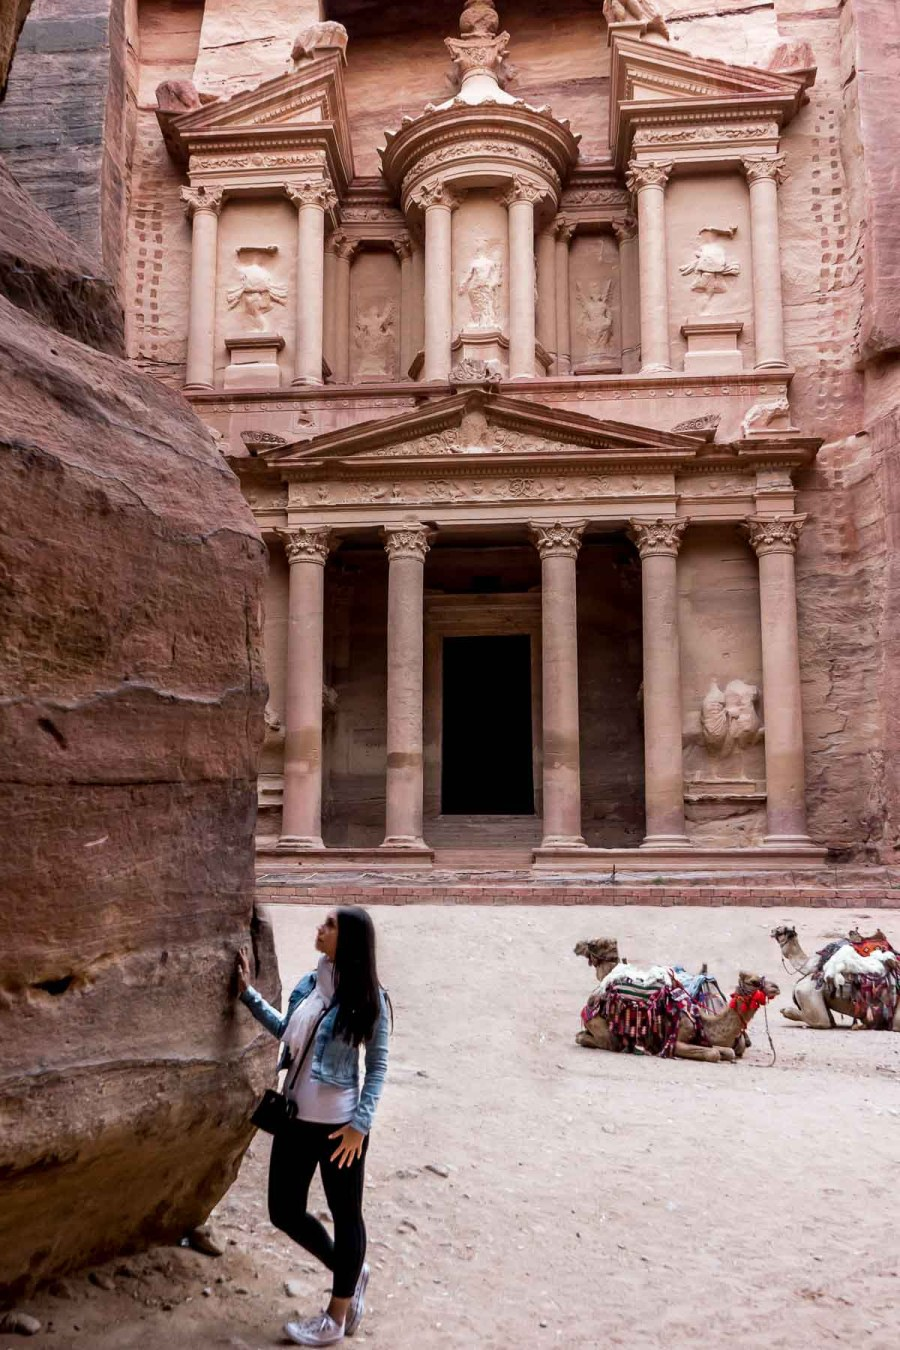 Girl in a denim jacket and jeans standing in front of the Treasury in Petra, Jordan